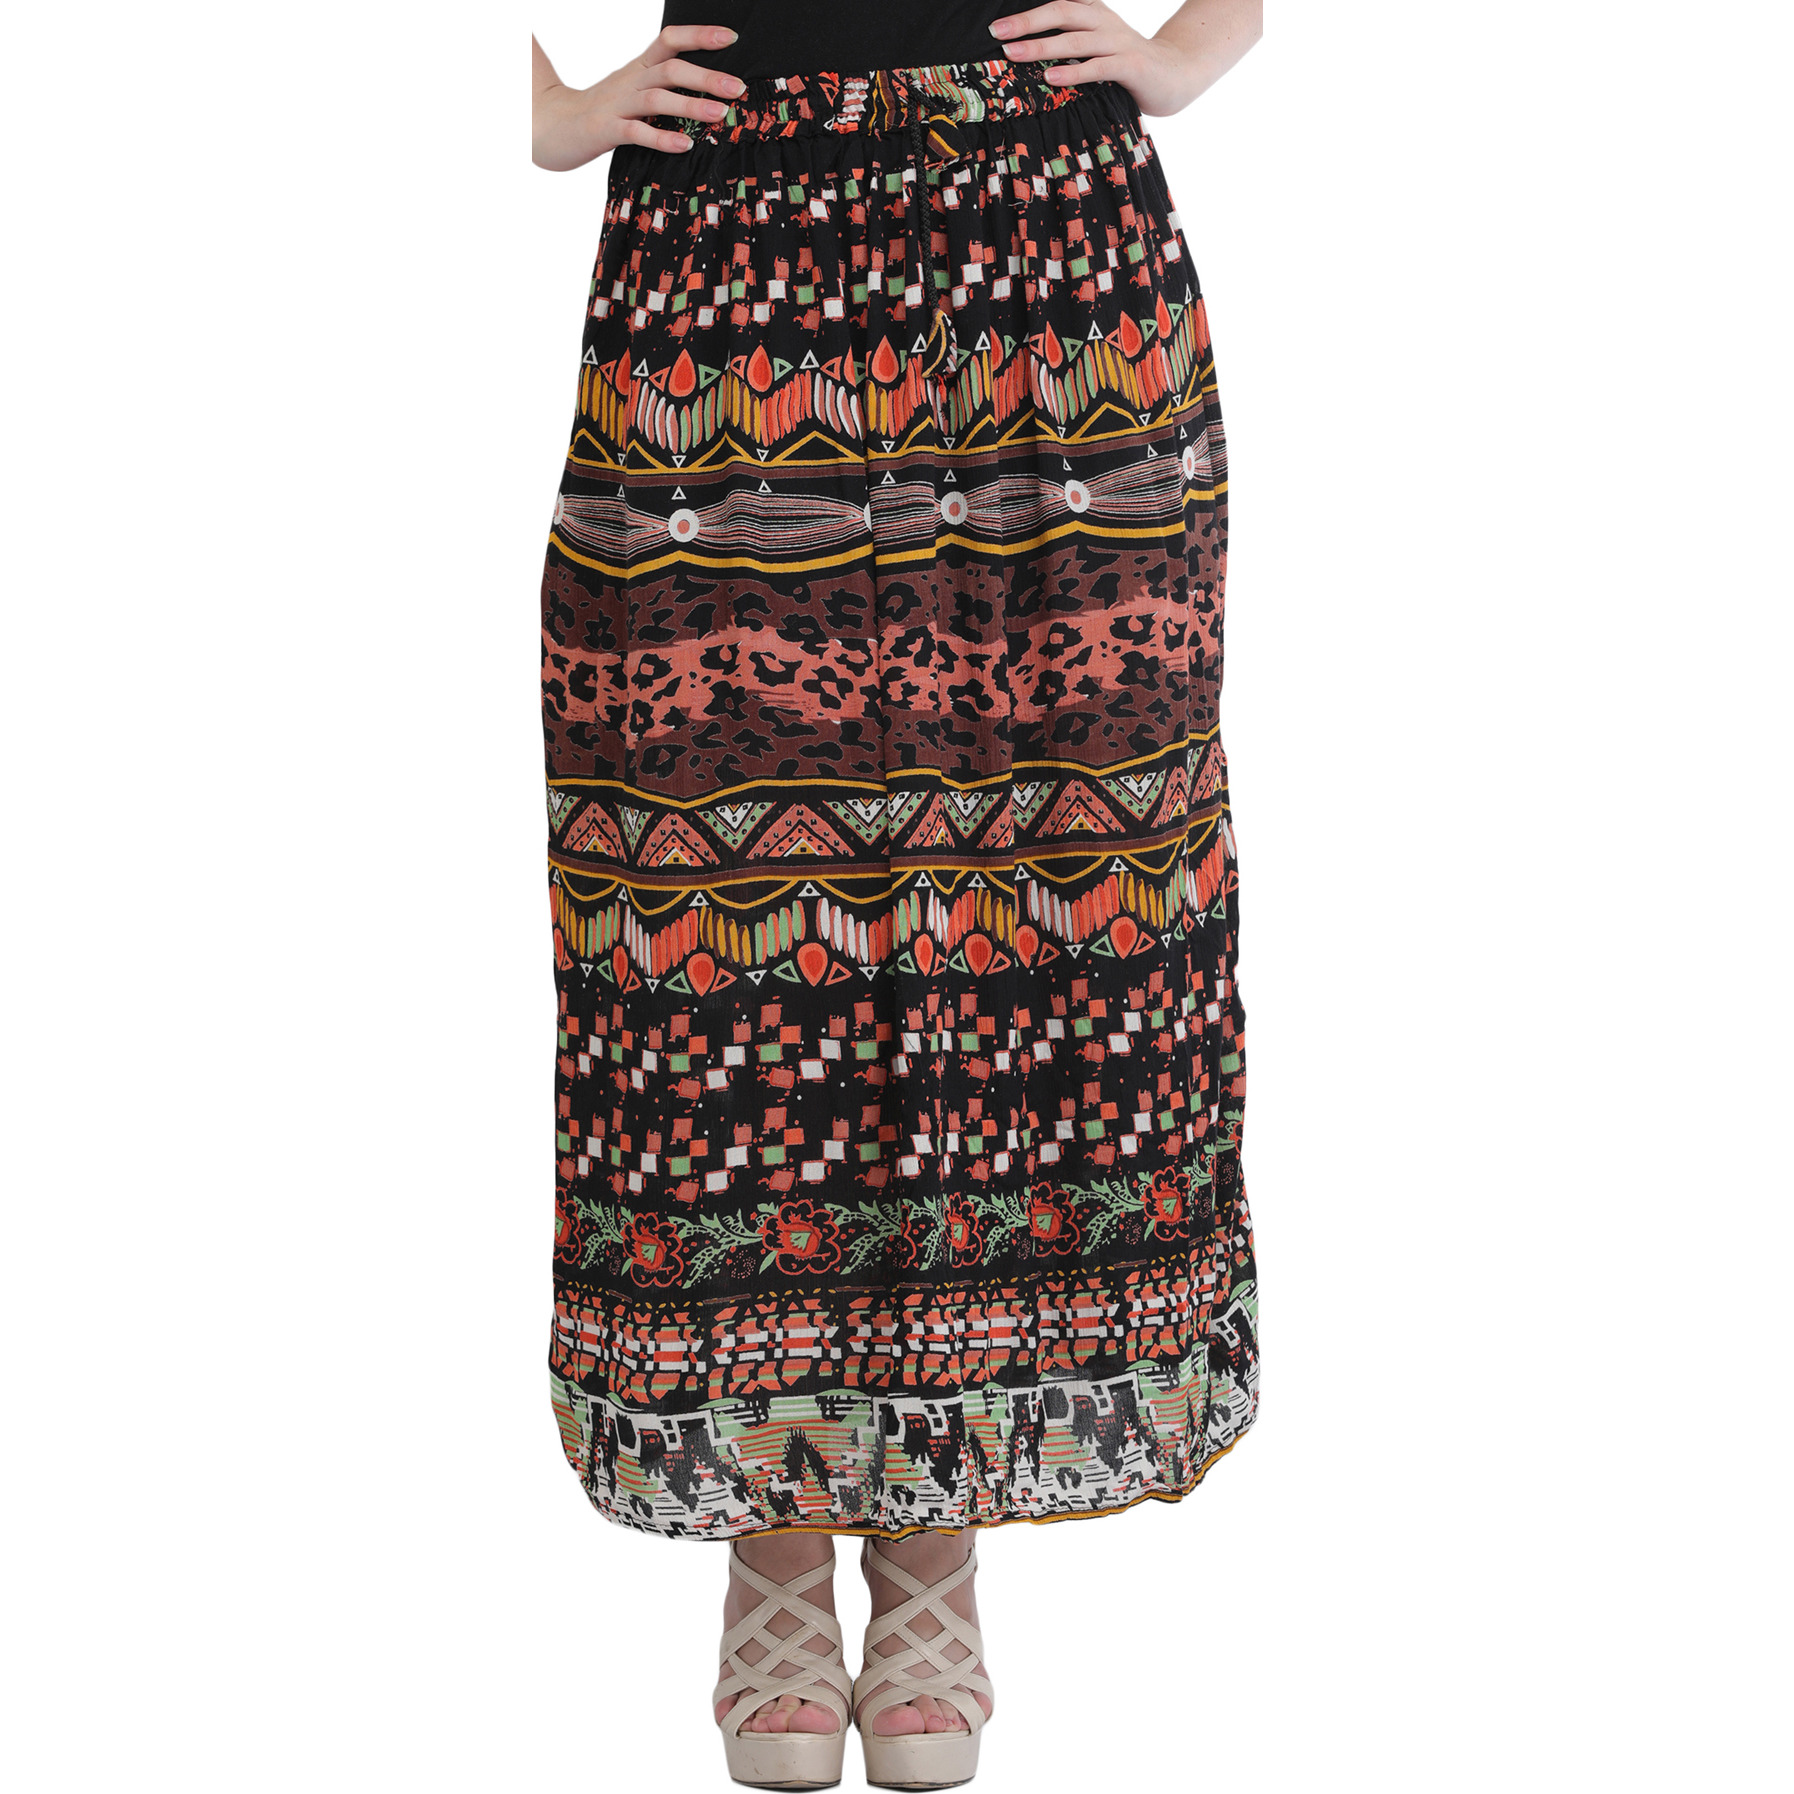 Black Printed Elastic Long Skirt with African Print